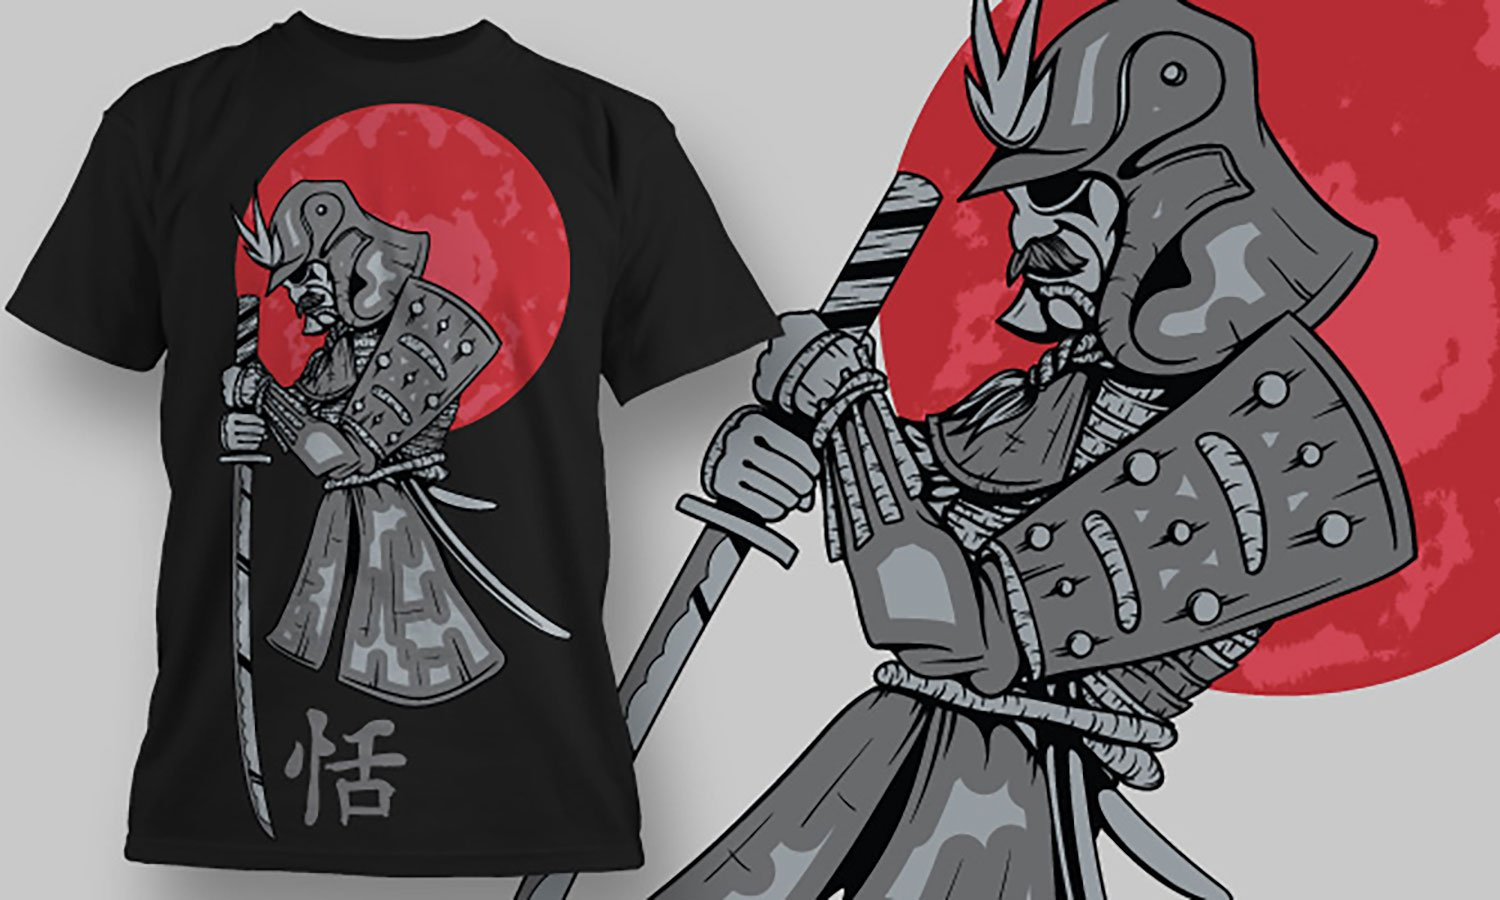 Japan Warrior - Printed T-Shirt for Men, Women and Kids - TS329